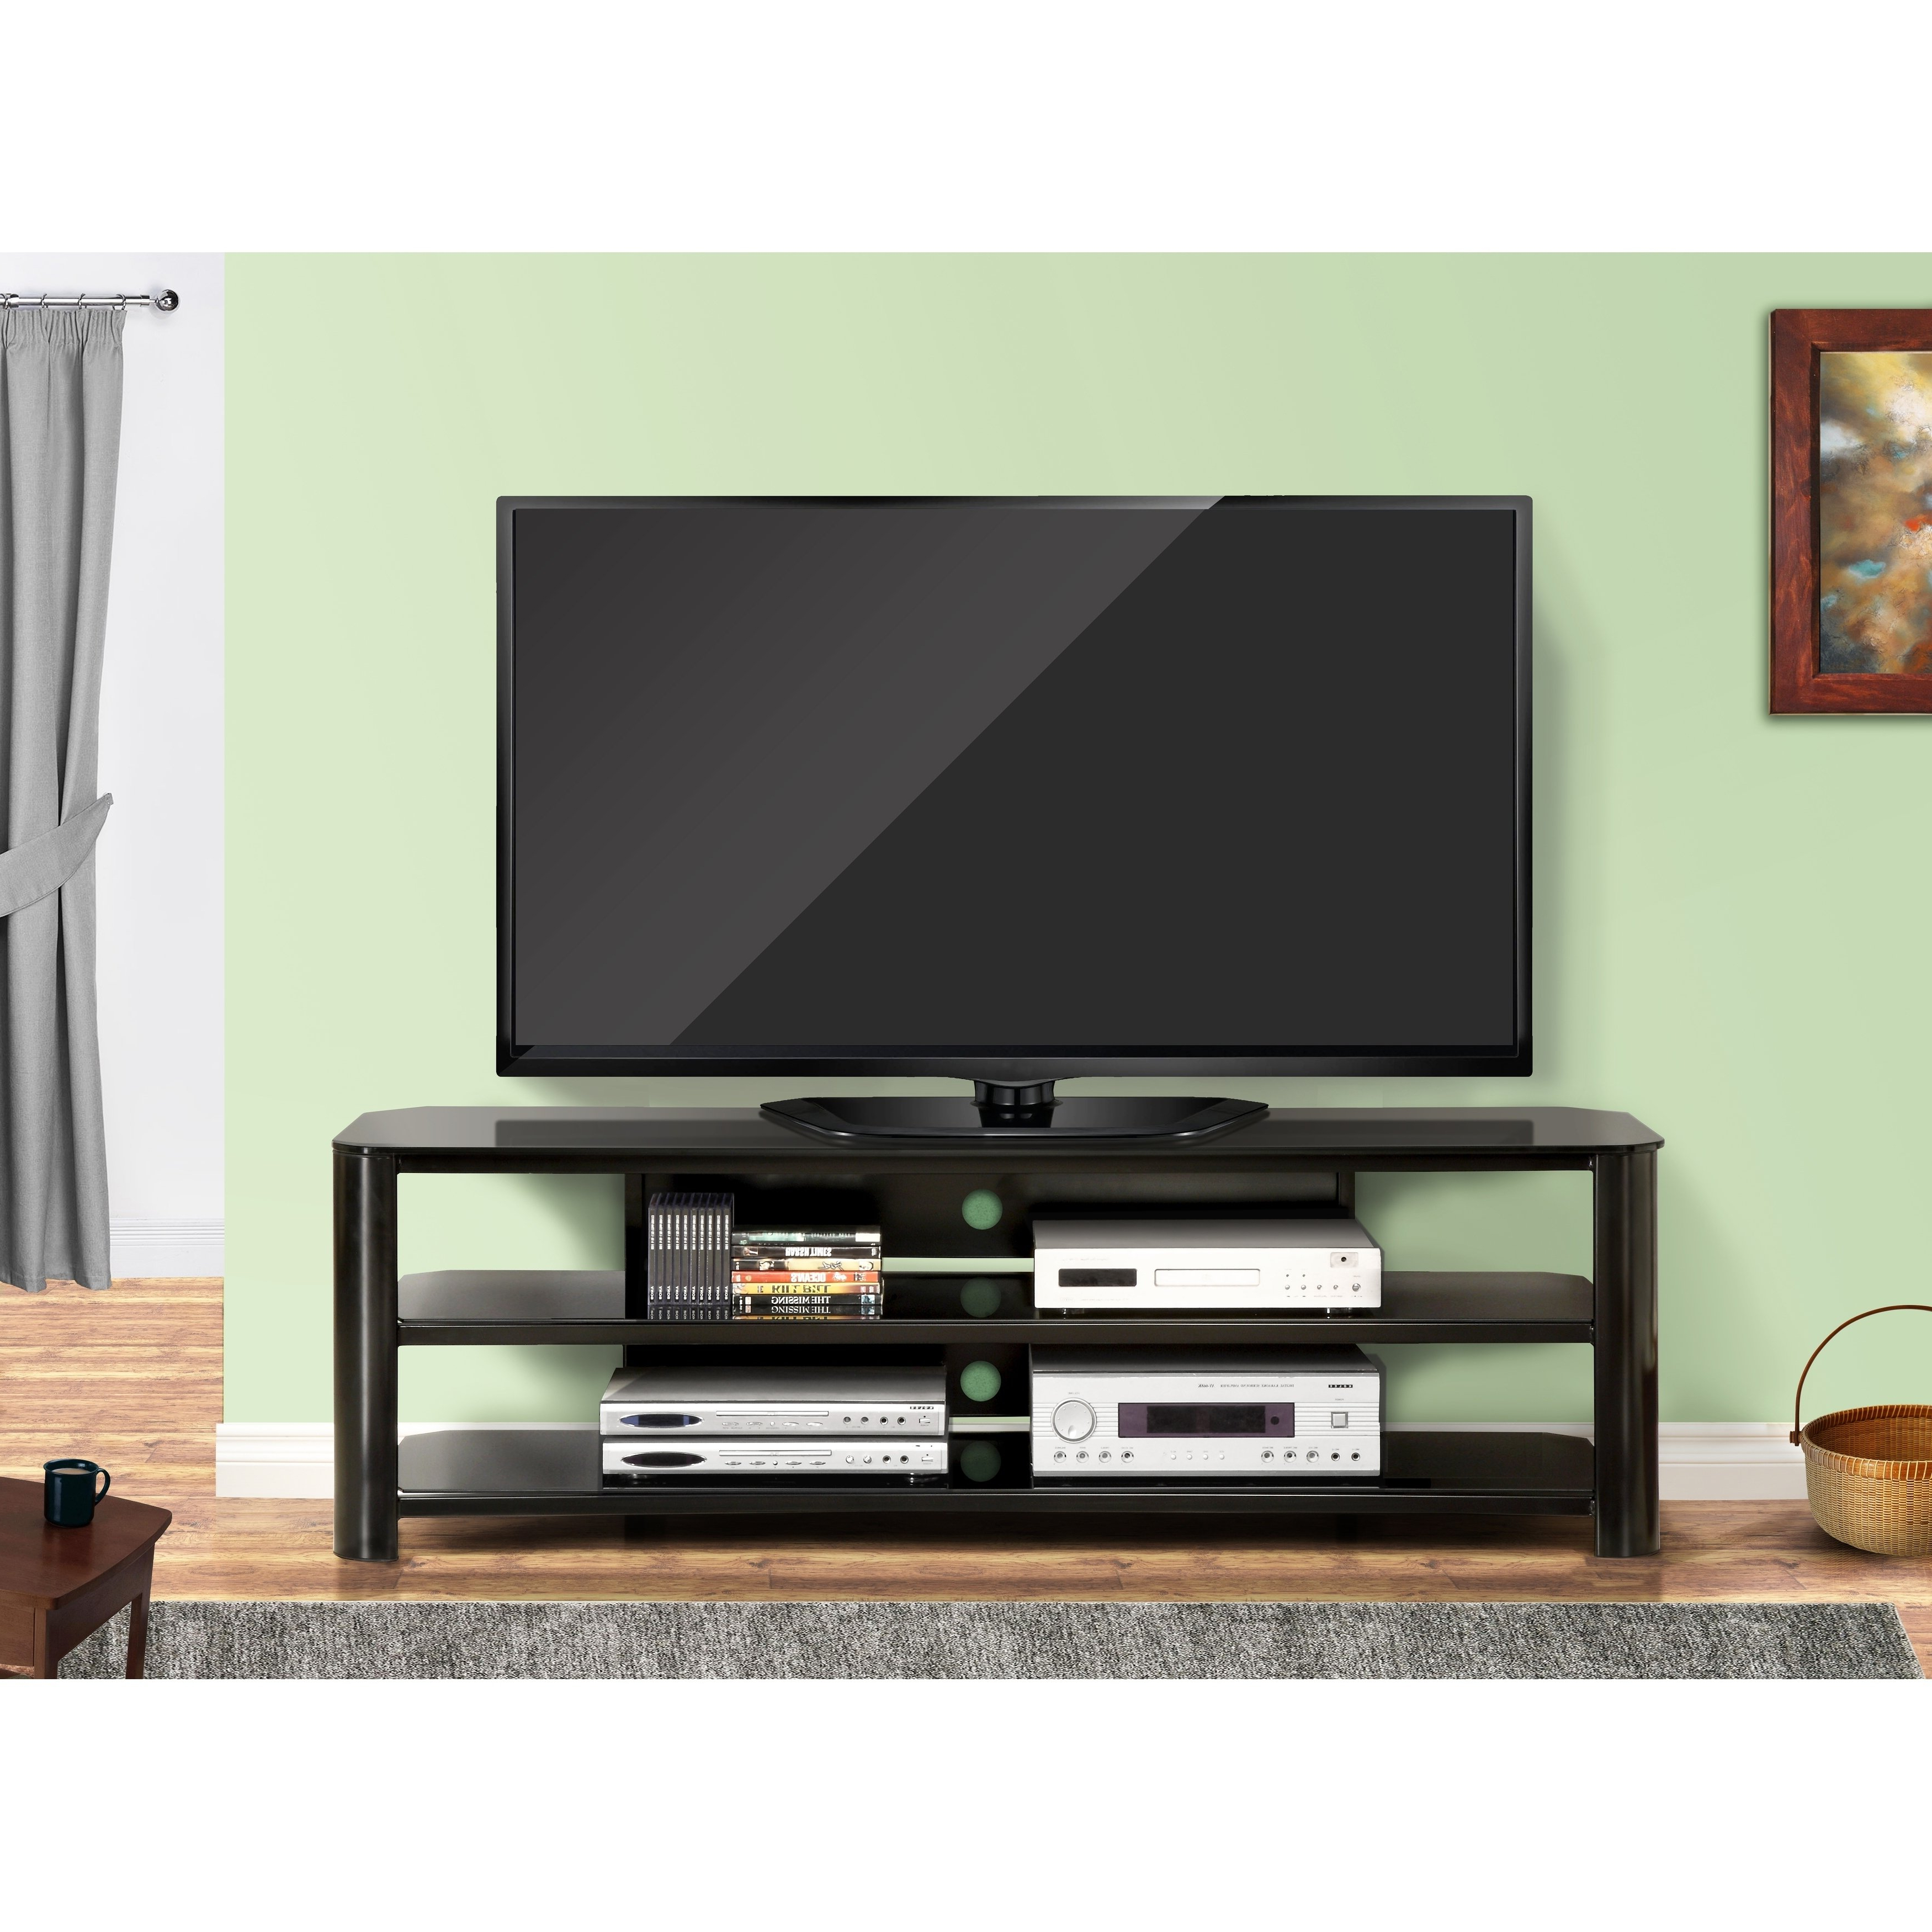 Shop Fold 'n' Snap Oxford Ez Black Innovex Tv Stand – Free Shipping With Regard To Oxford 84 Inch Tv Stands (View 15 of 20)